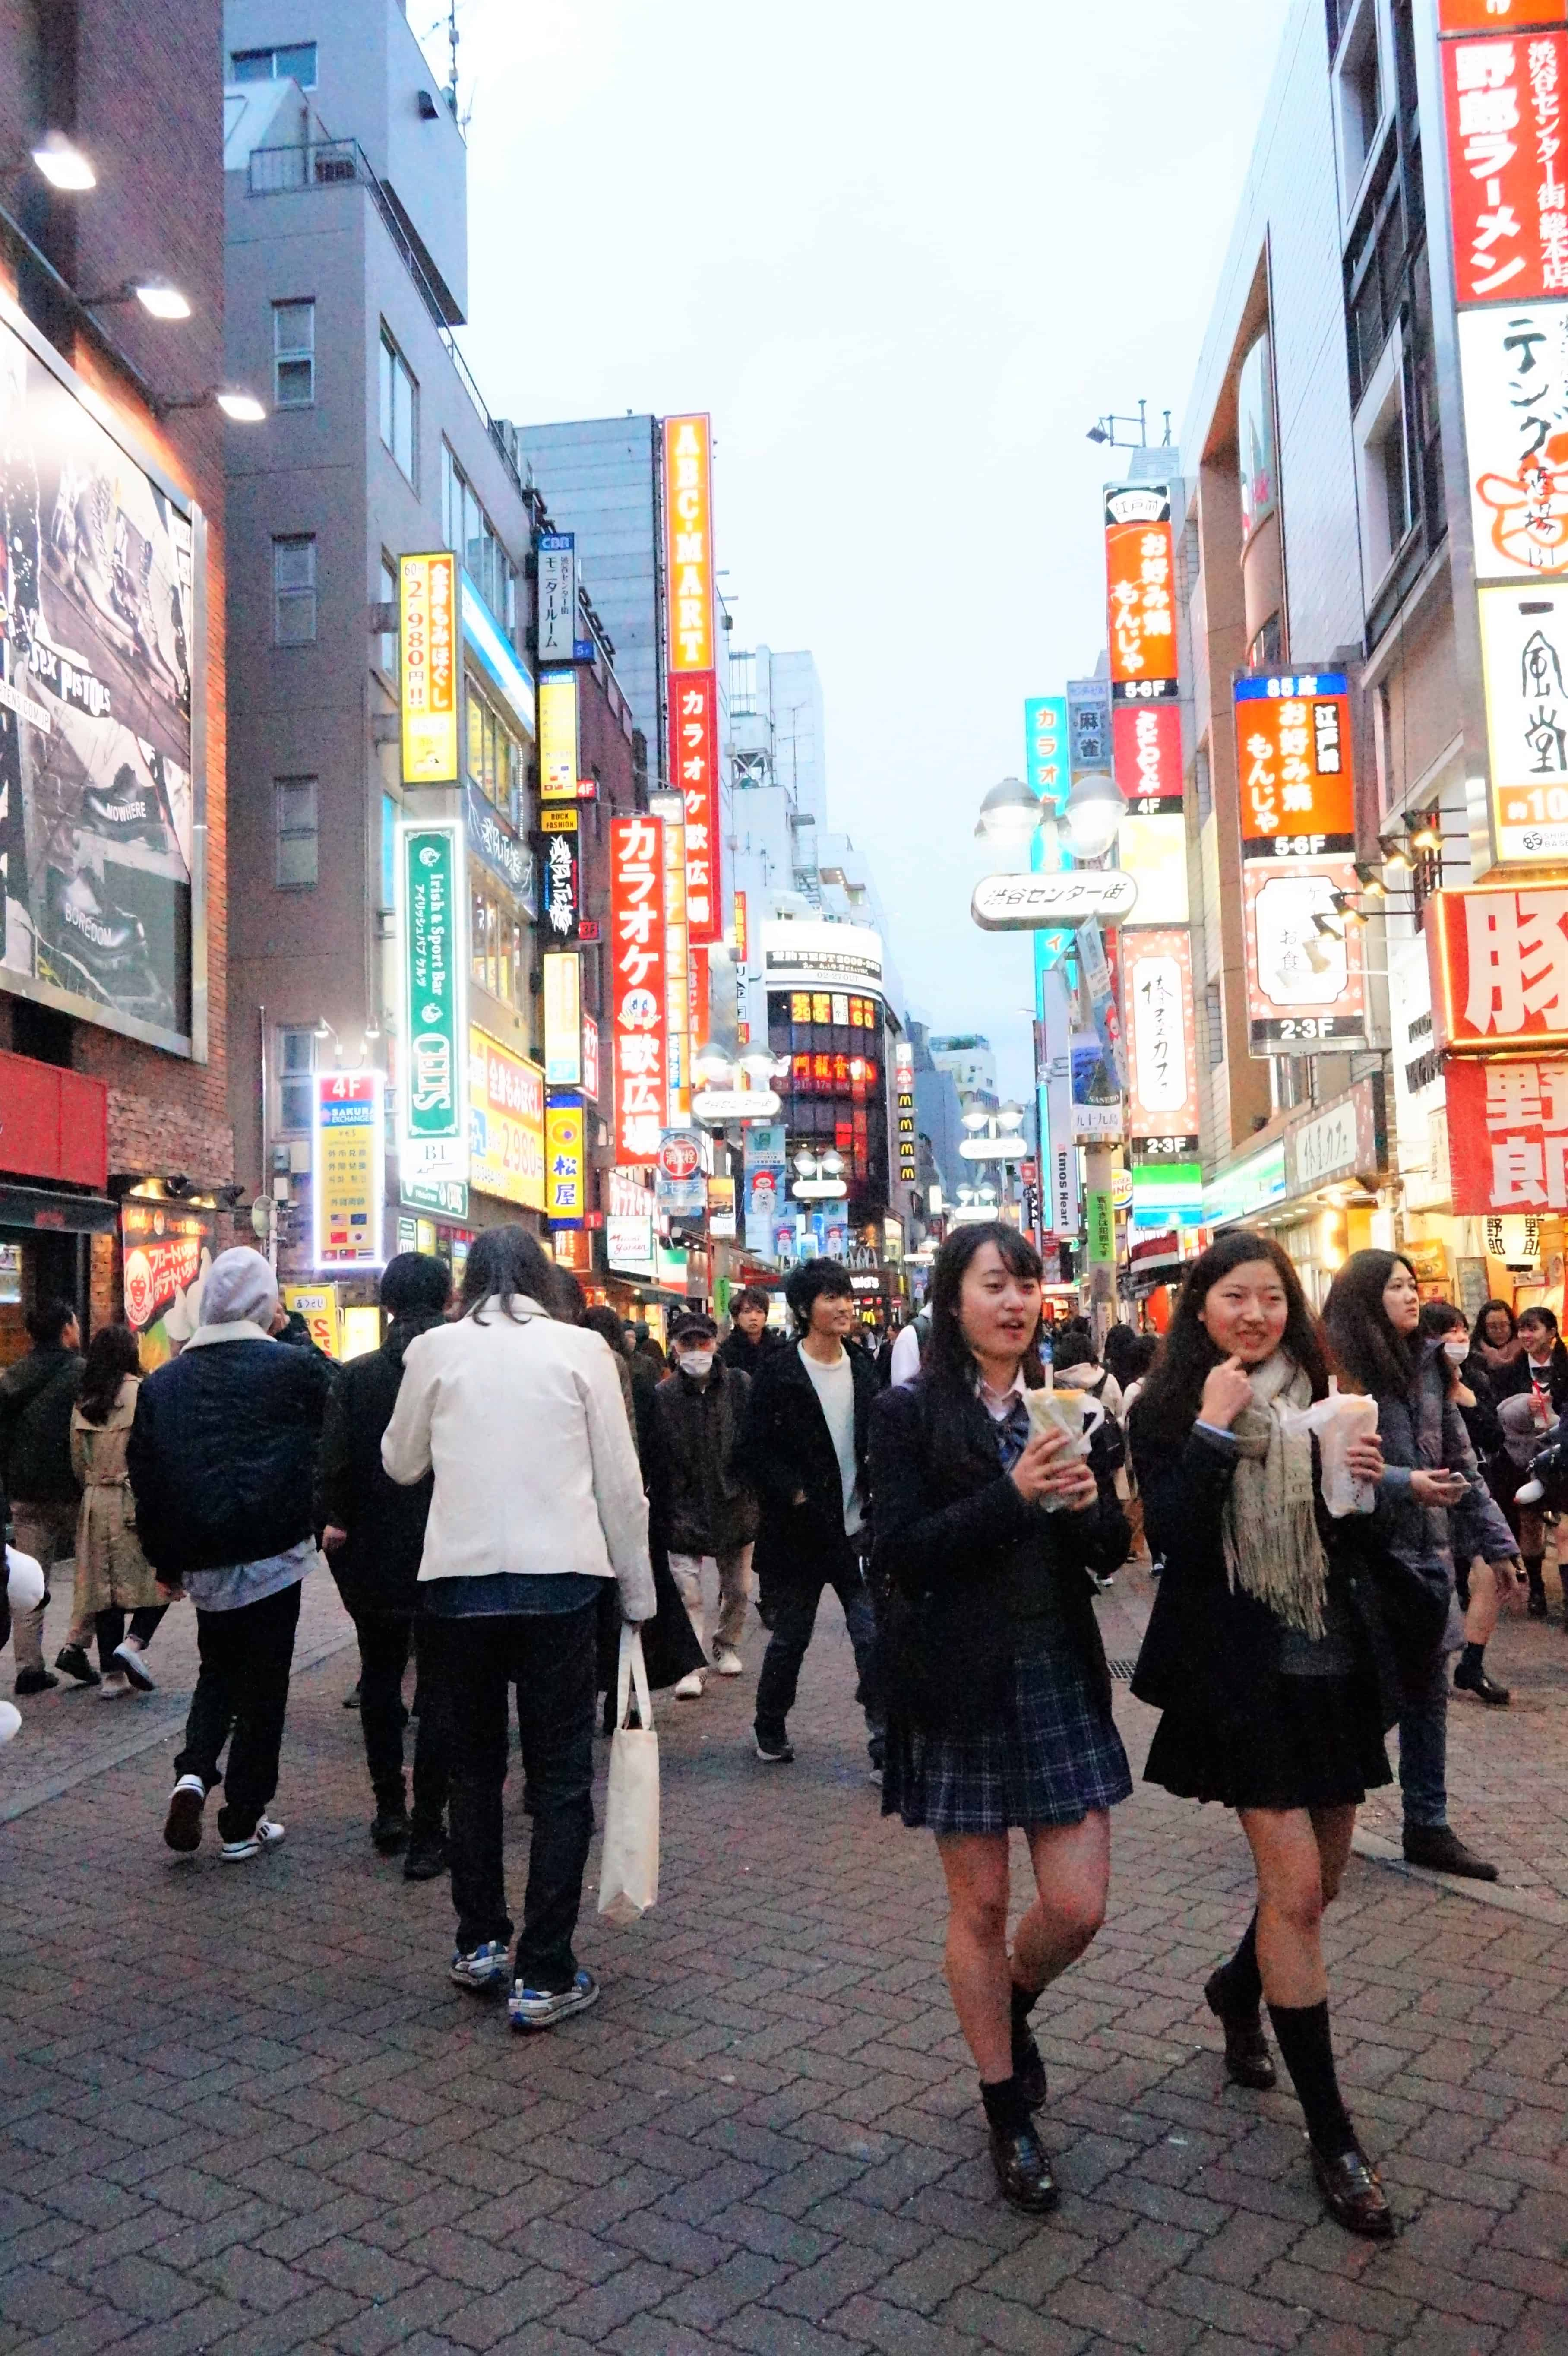 Tokyo Cruce de Shibuya 11 - Tokyo in 4 days: 5 must-see places